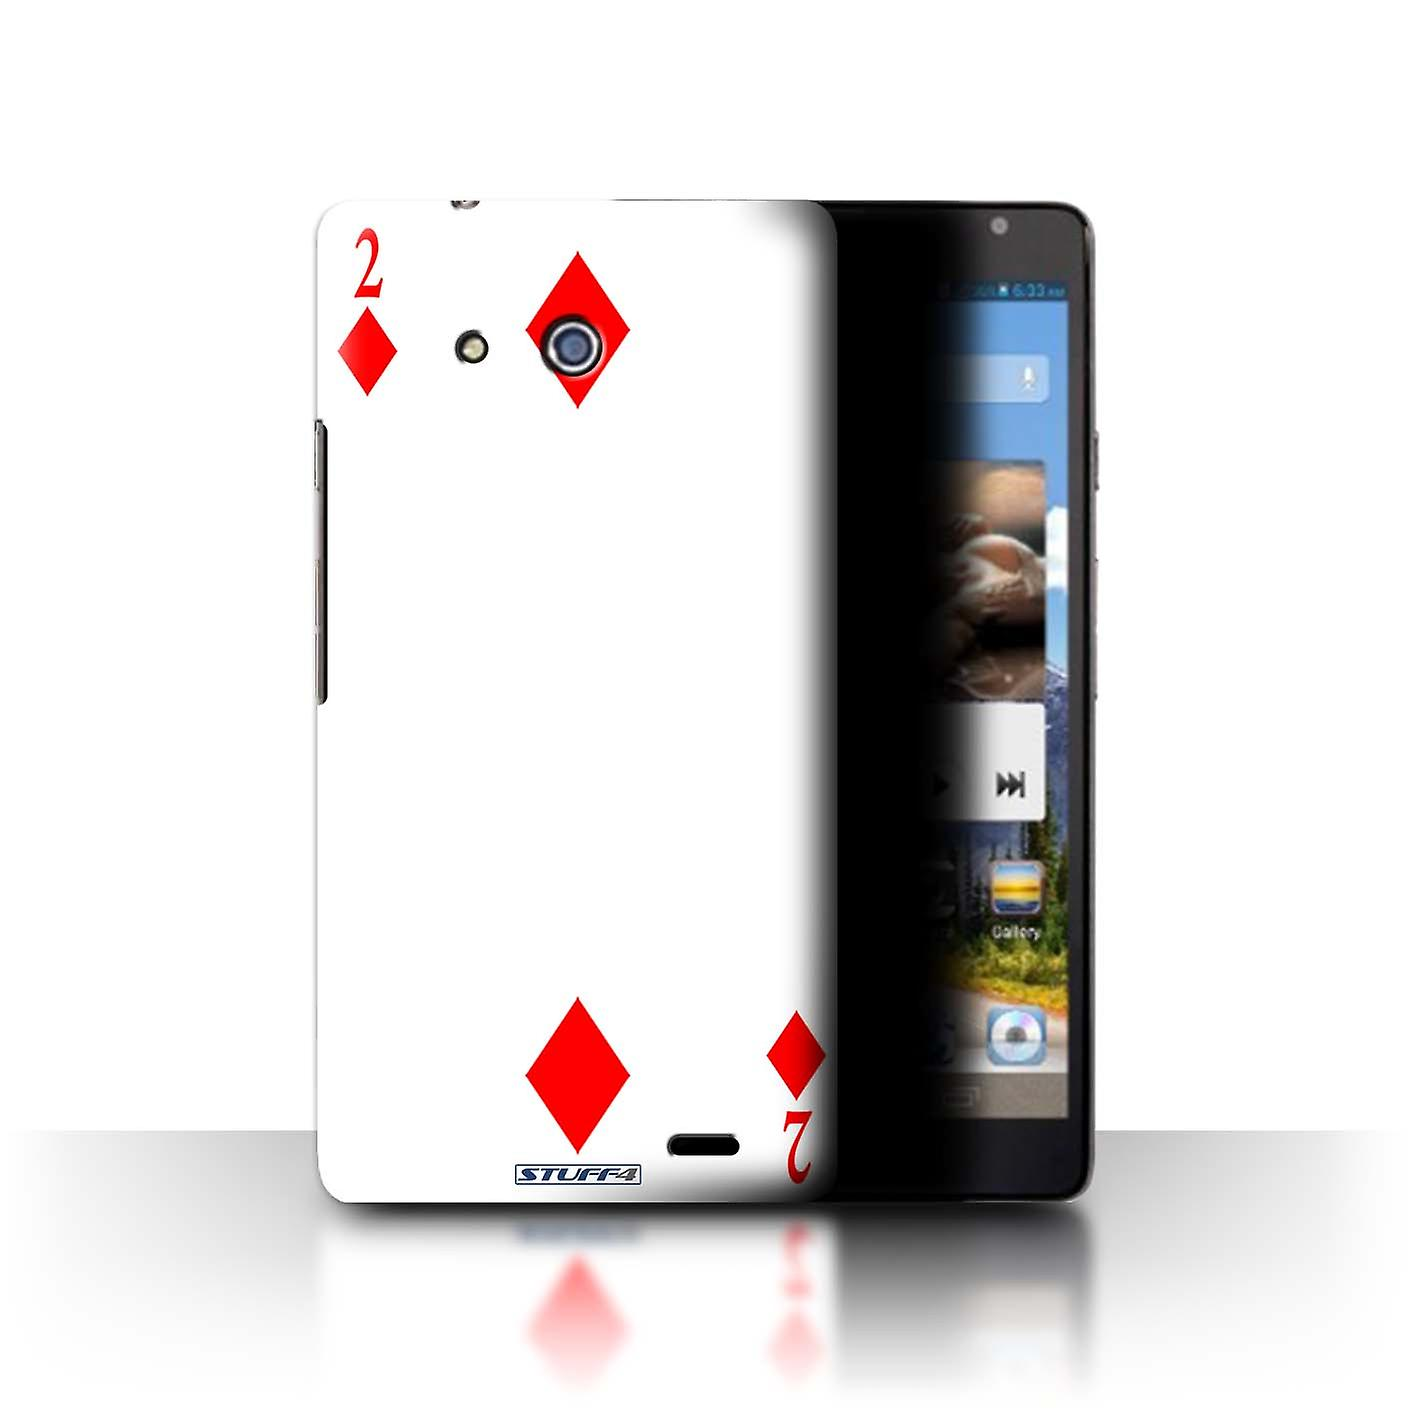 reputable site a1678 6df81 STUFF4 Case/Cover for Huawei Ascend Mate/2 of Diamonds/Playing Cards